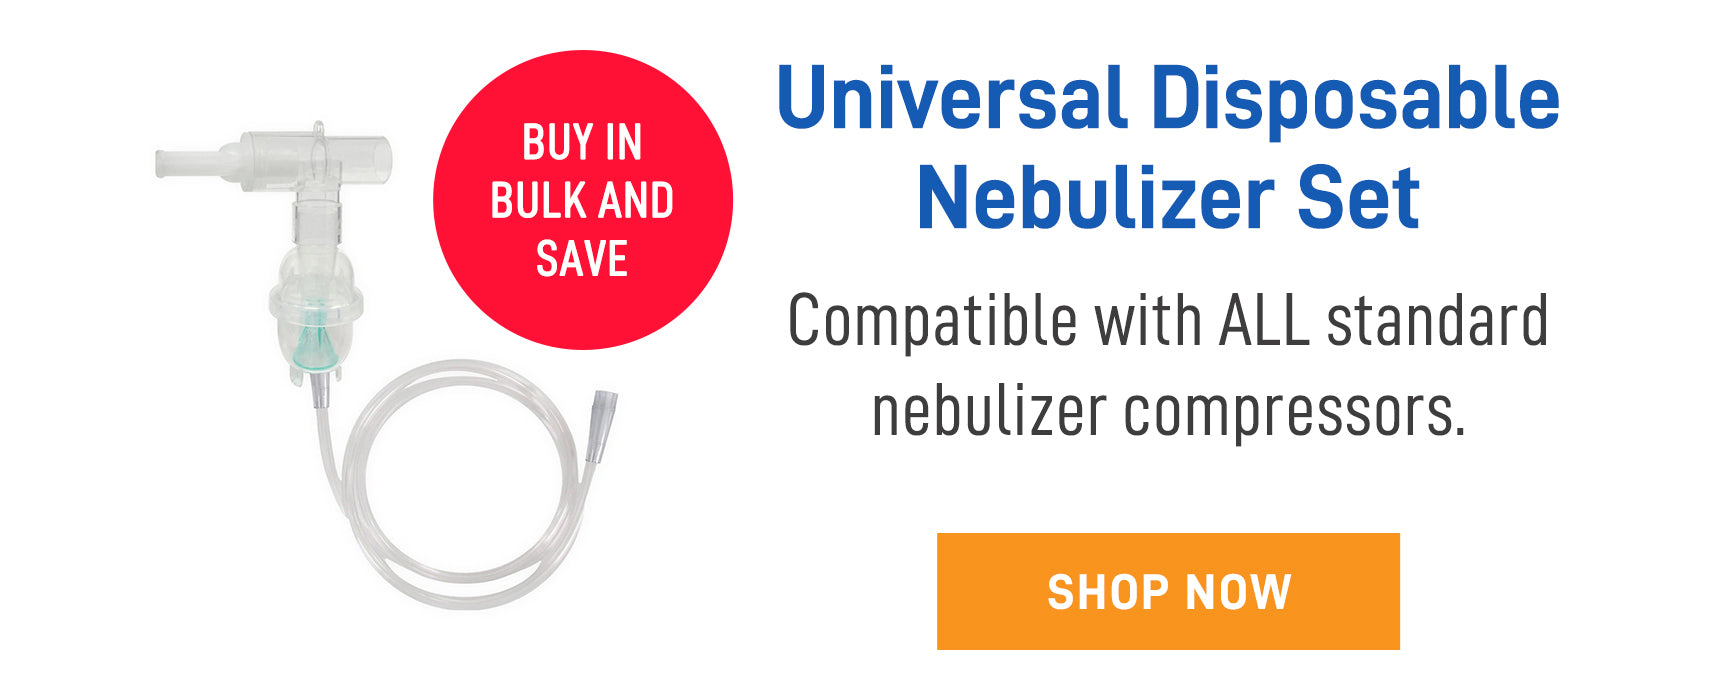 Universal nebulizer set